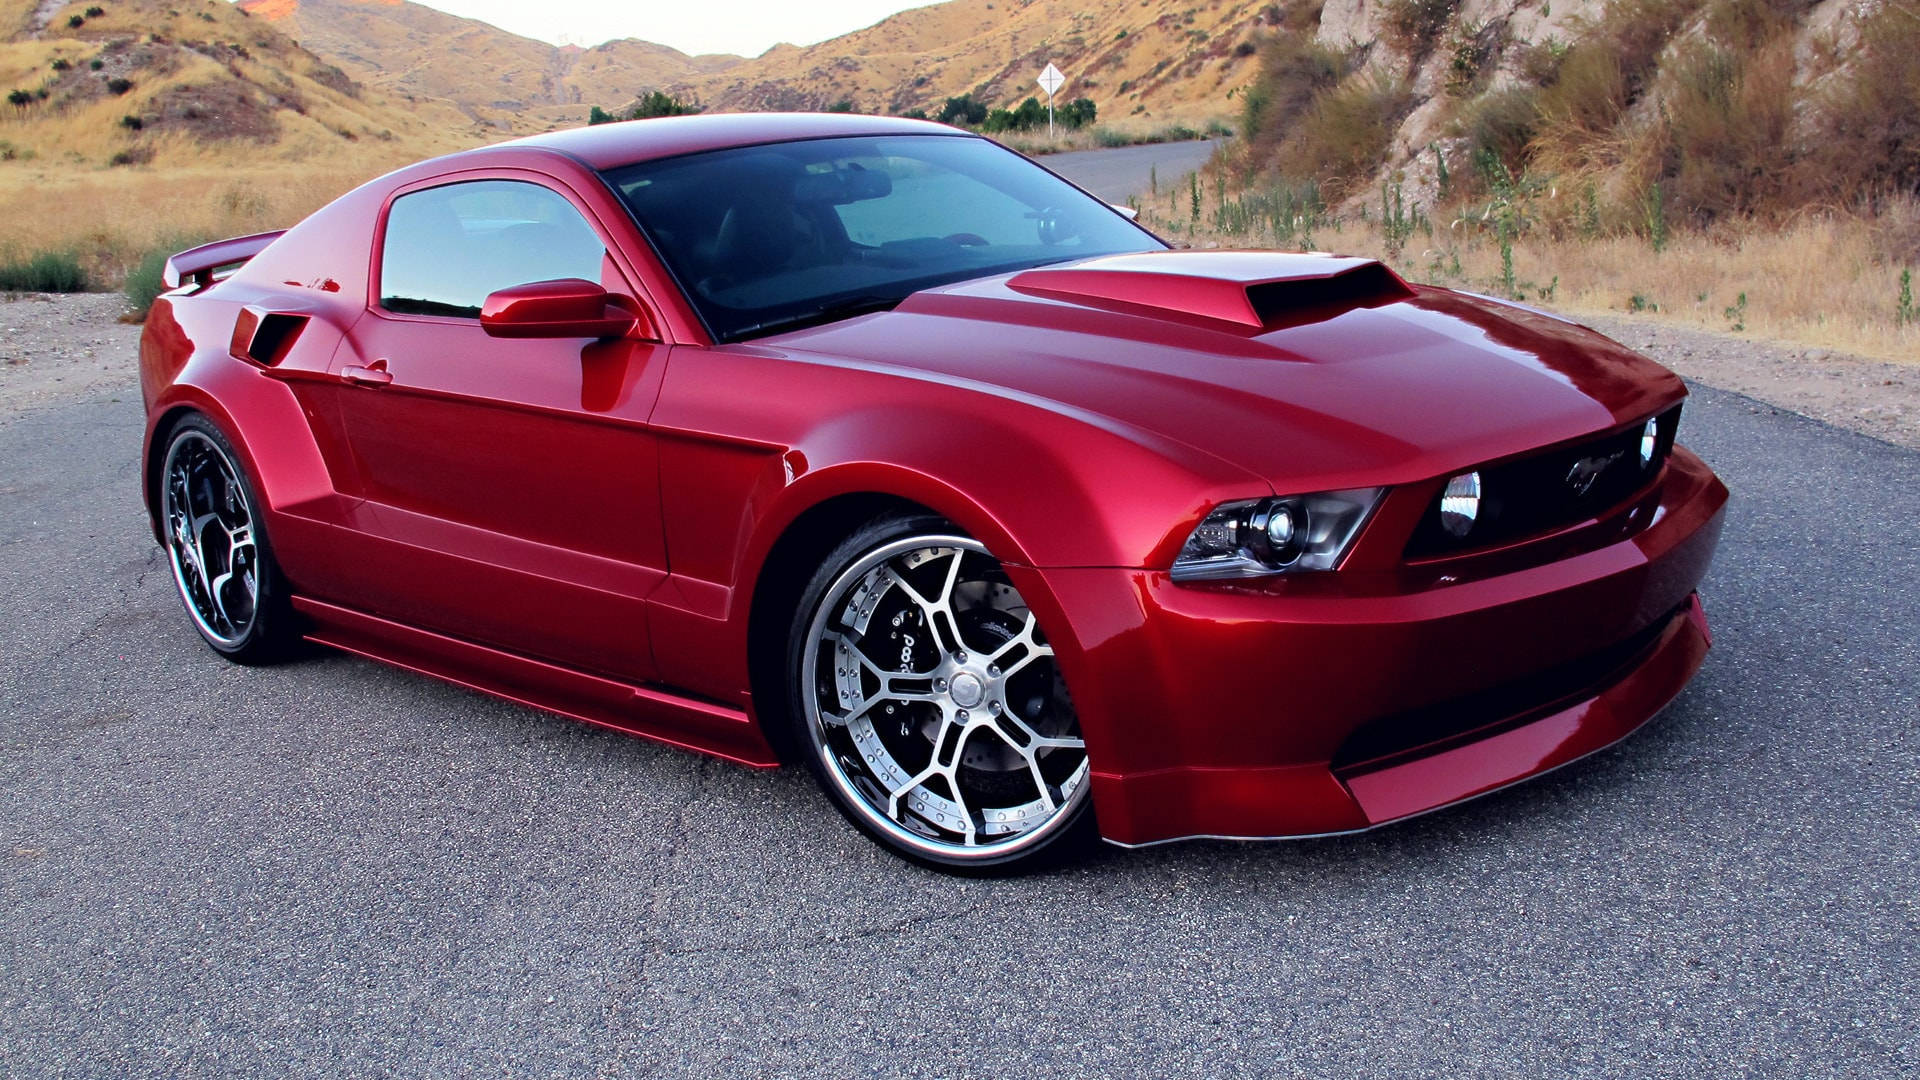 Ford Mustang GT Full hd wallpapers